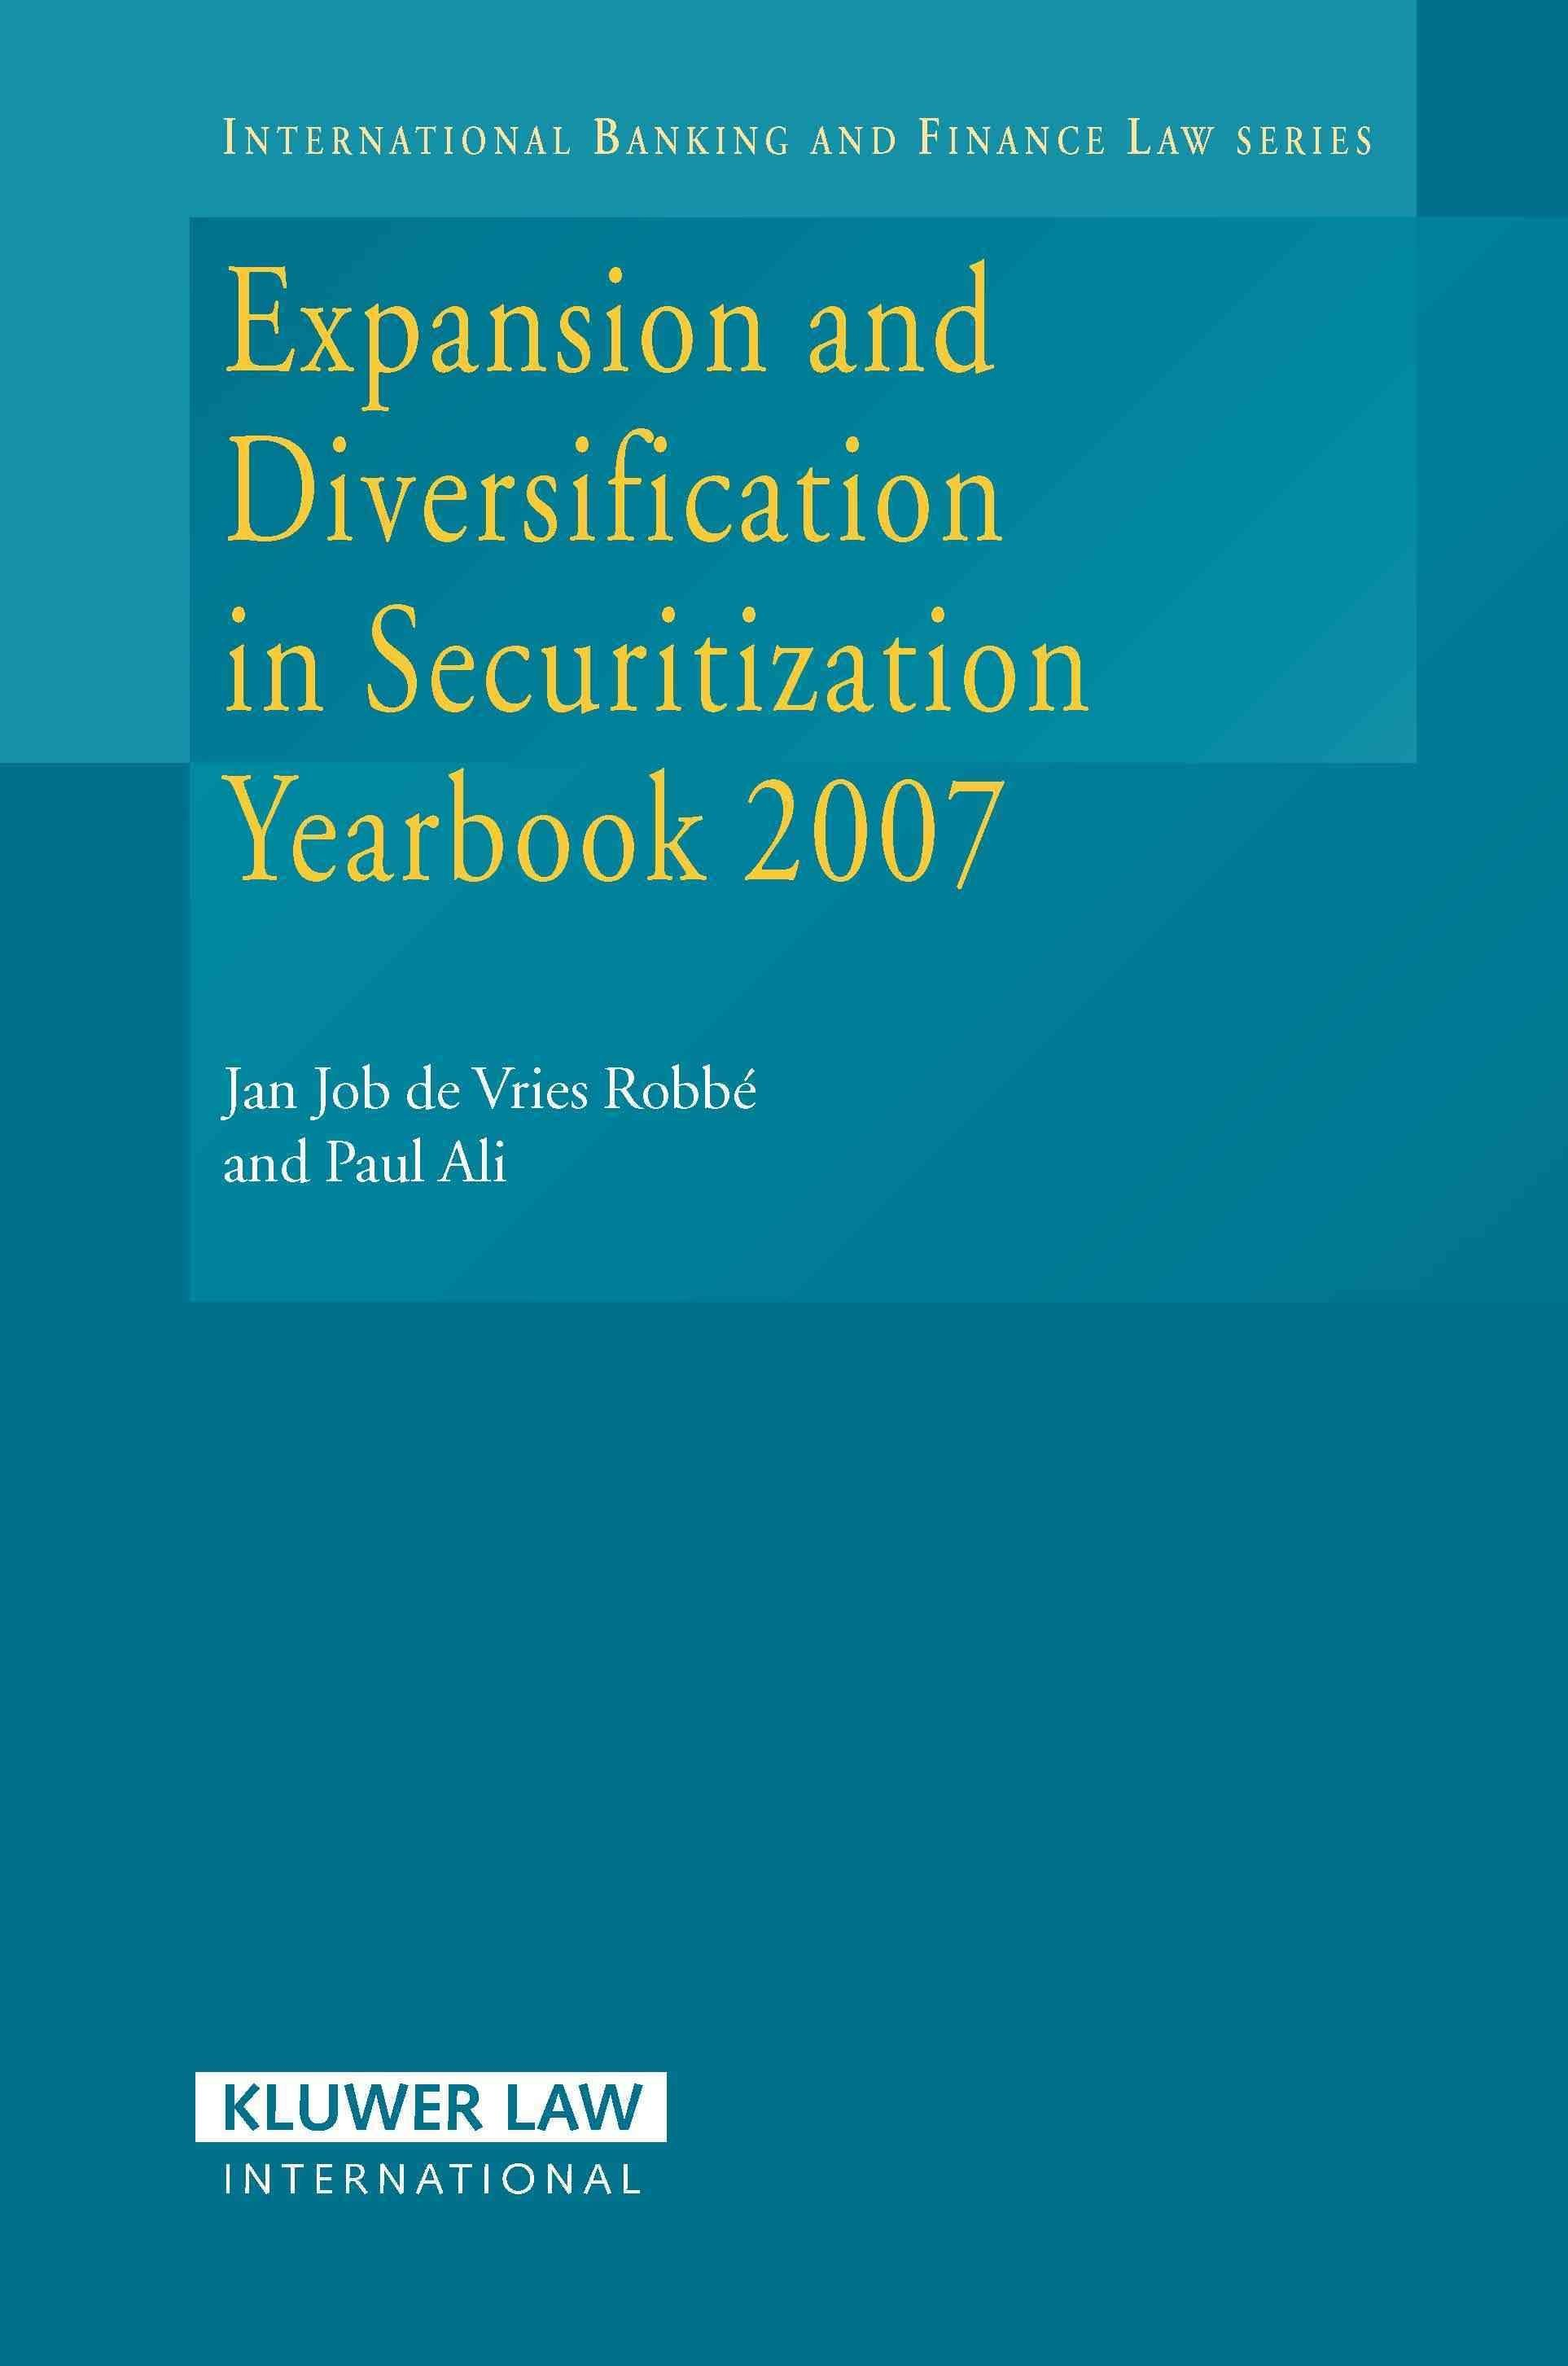 Innovations in Securitization Yearbook 2007 - Jan Job de Vries Robbe